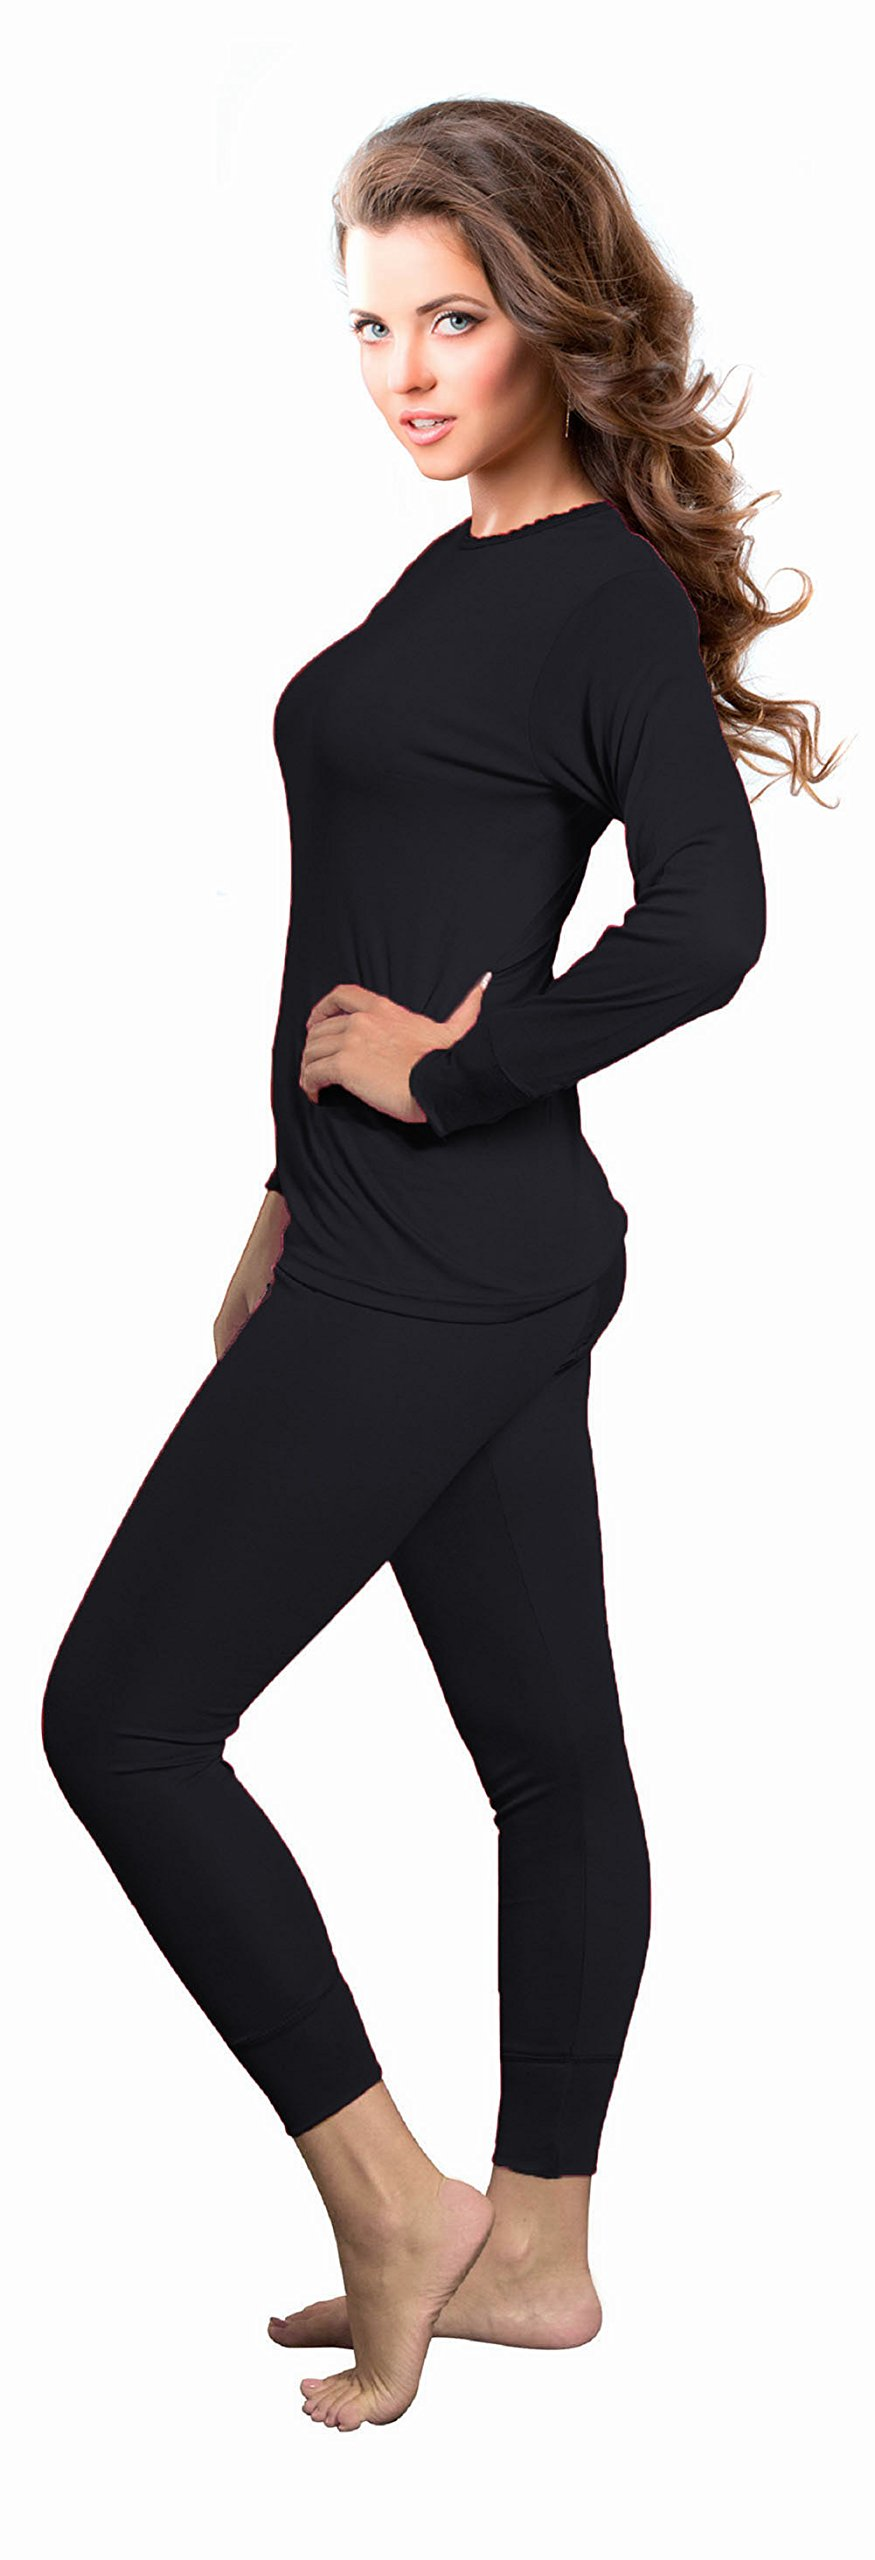 Rocky Womens Thermal 2 Pc Long John Underwear Set Top and Bottom Smooth Knit (X-Small, Black)